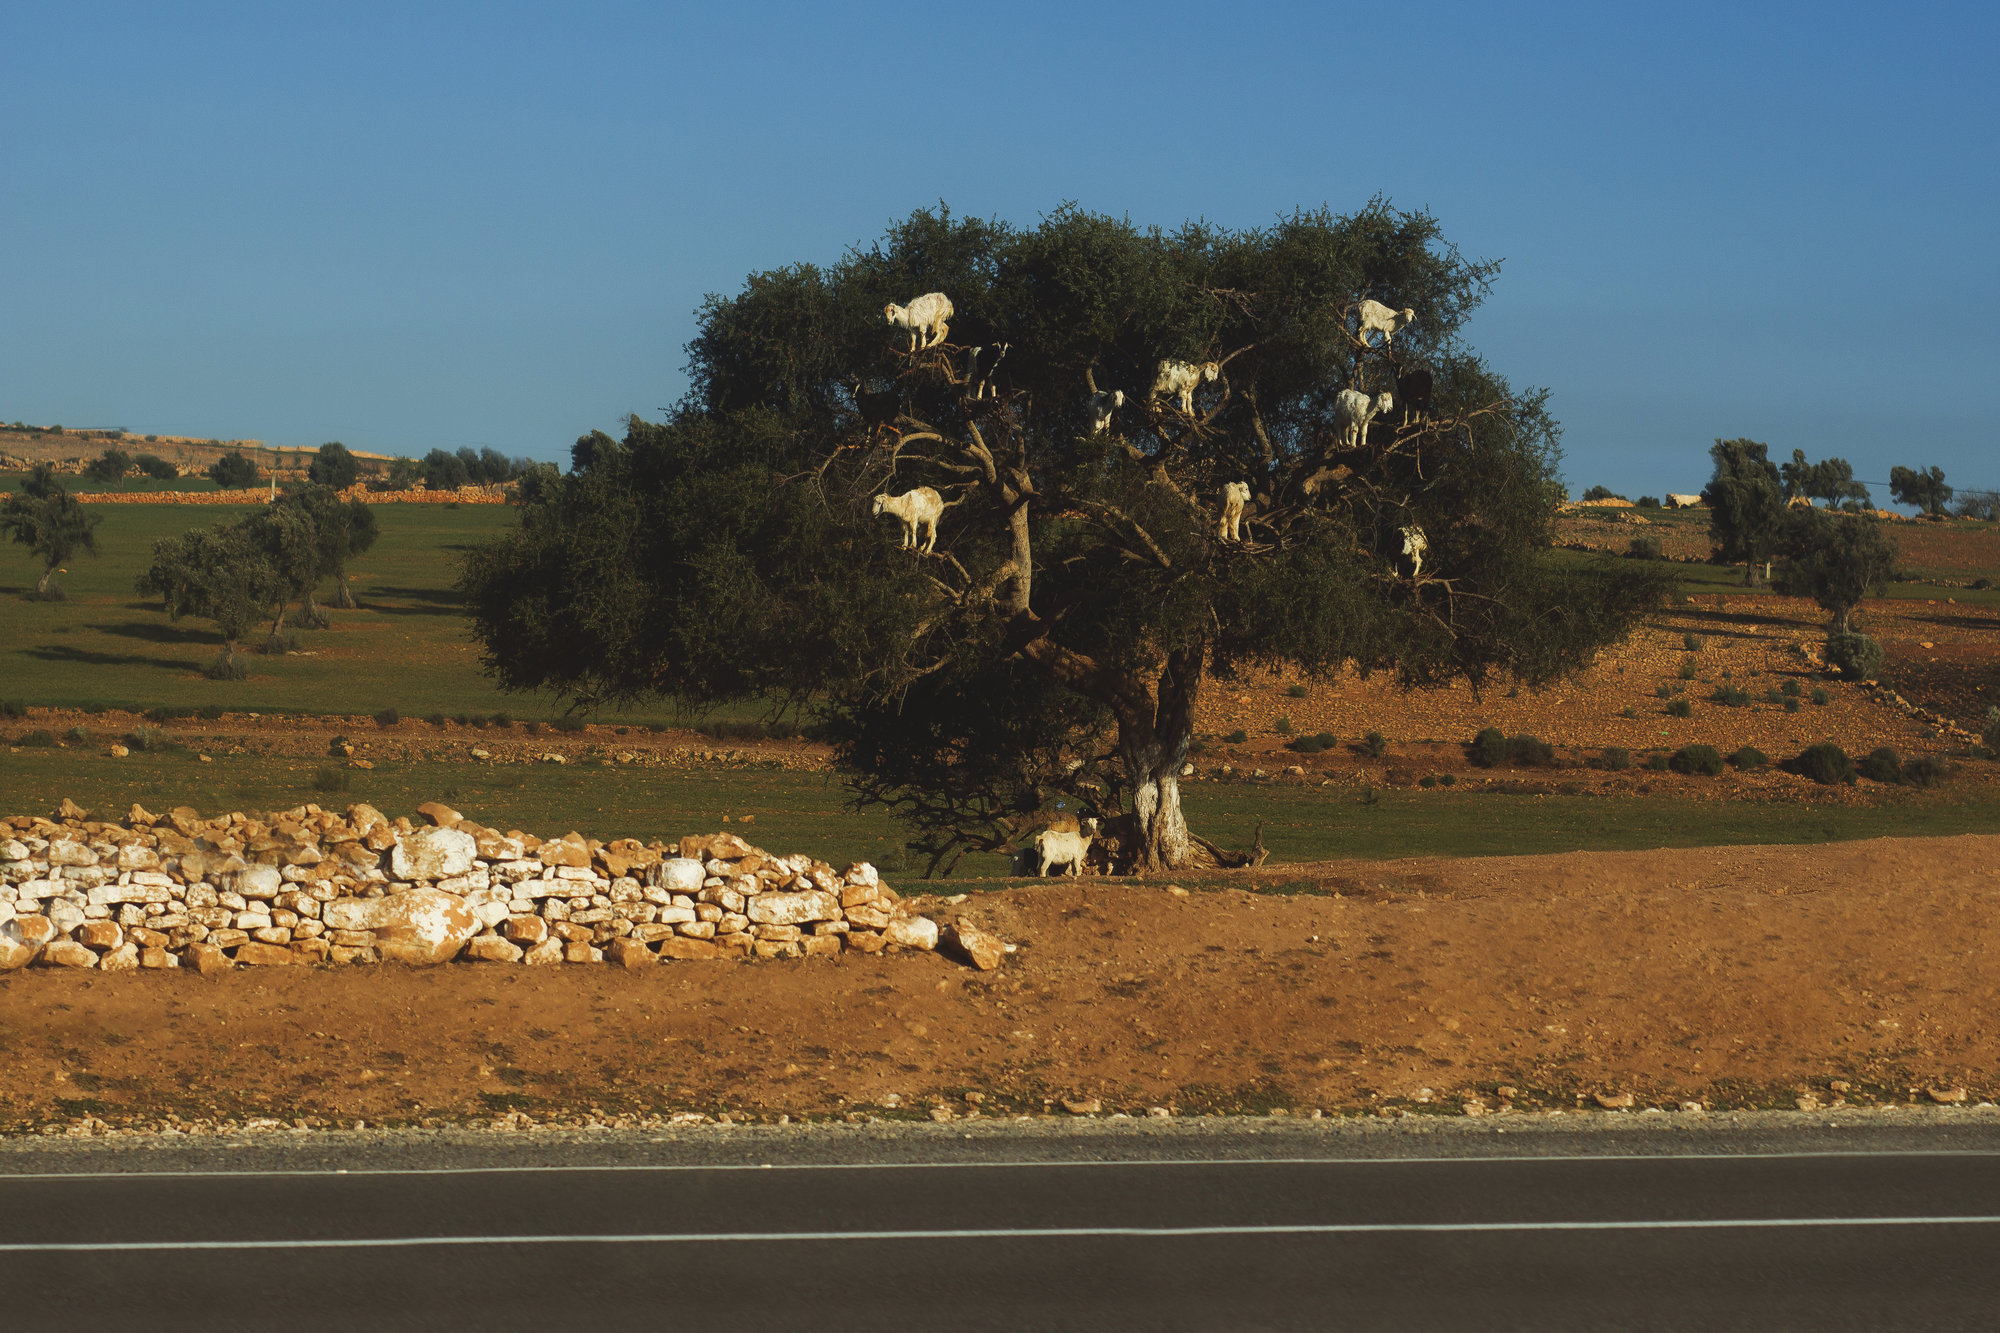 goats on trees are local attraction